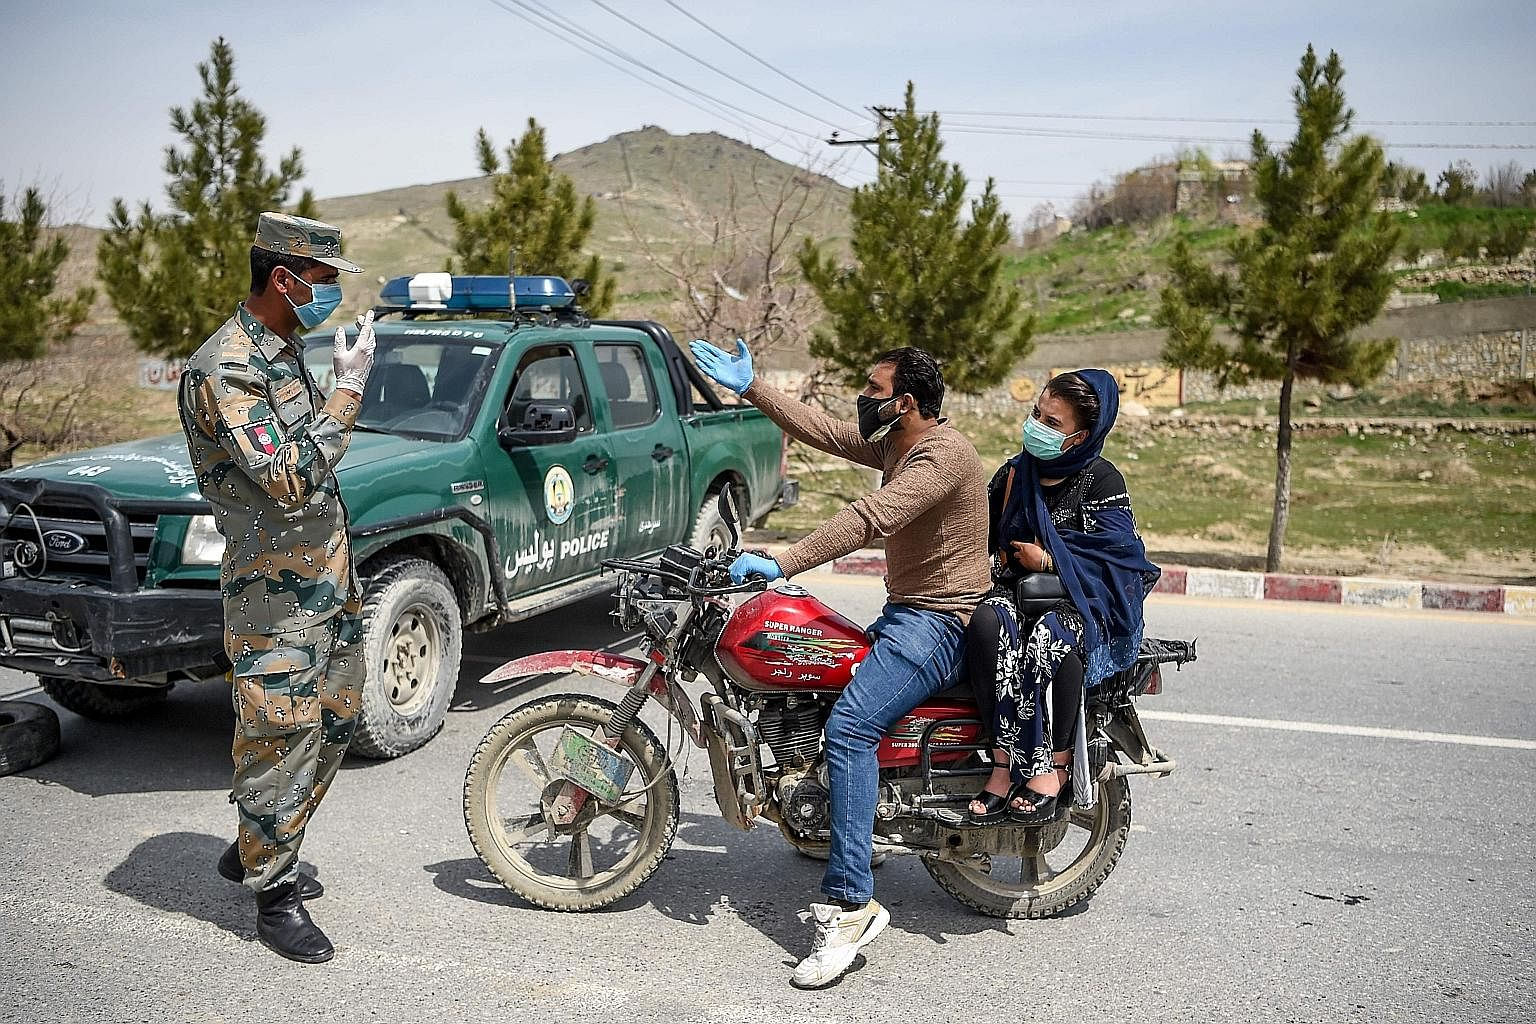 An Afghan security officer stopping motorists at a checkpoint in Kabul on April 8, during a government-imposed lockdown as a preventive measure against Covid-19. The virus may have brought much of the world to a standstill, but it has not ended confl